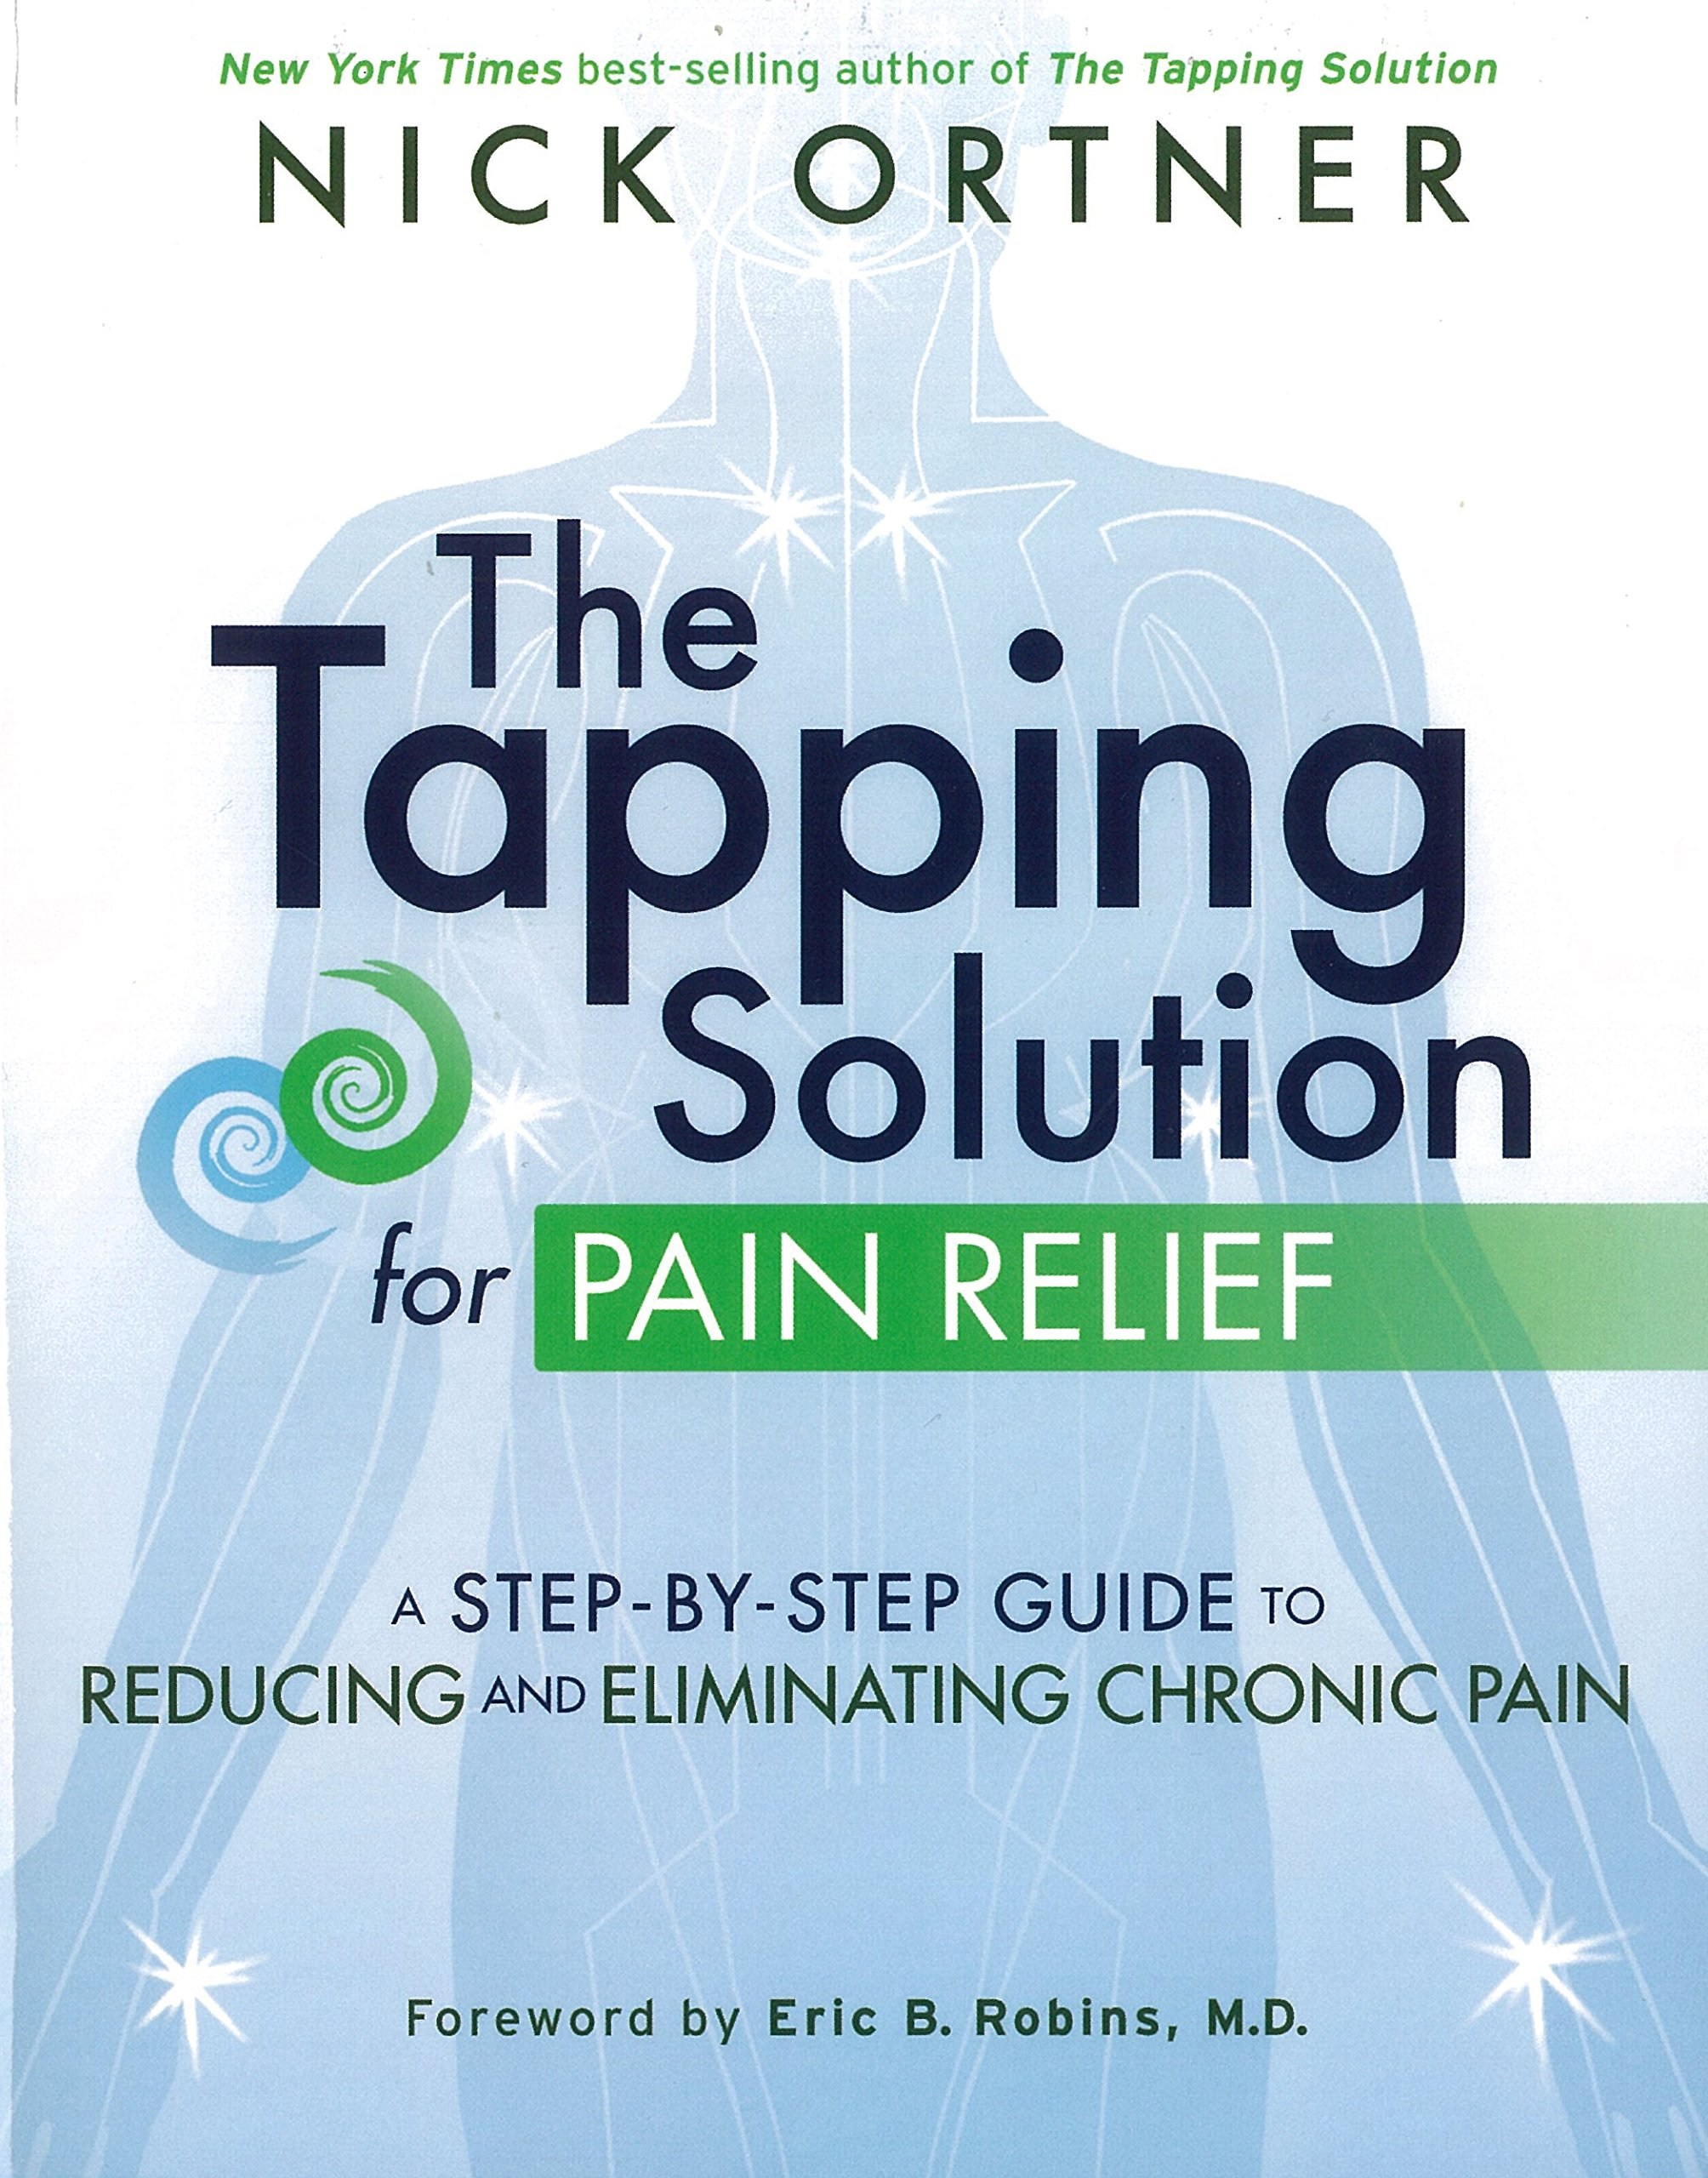 The Tapping Solution for Pain Relief: A Step-by-Step Guide to Reducing and Eliminating Chronic Pain Paperback – September 6, 2016 Nick Ortner Hay House Inc. 1401945252 Pain Management